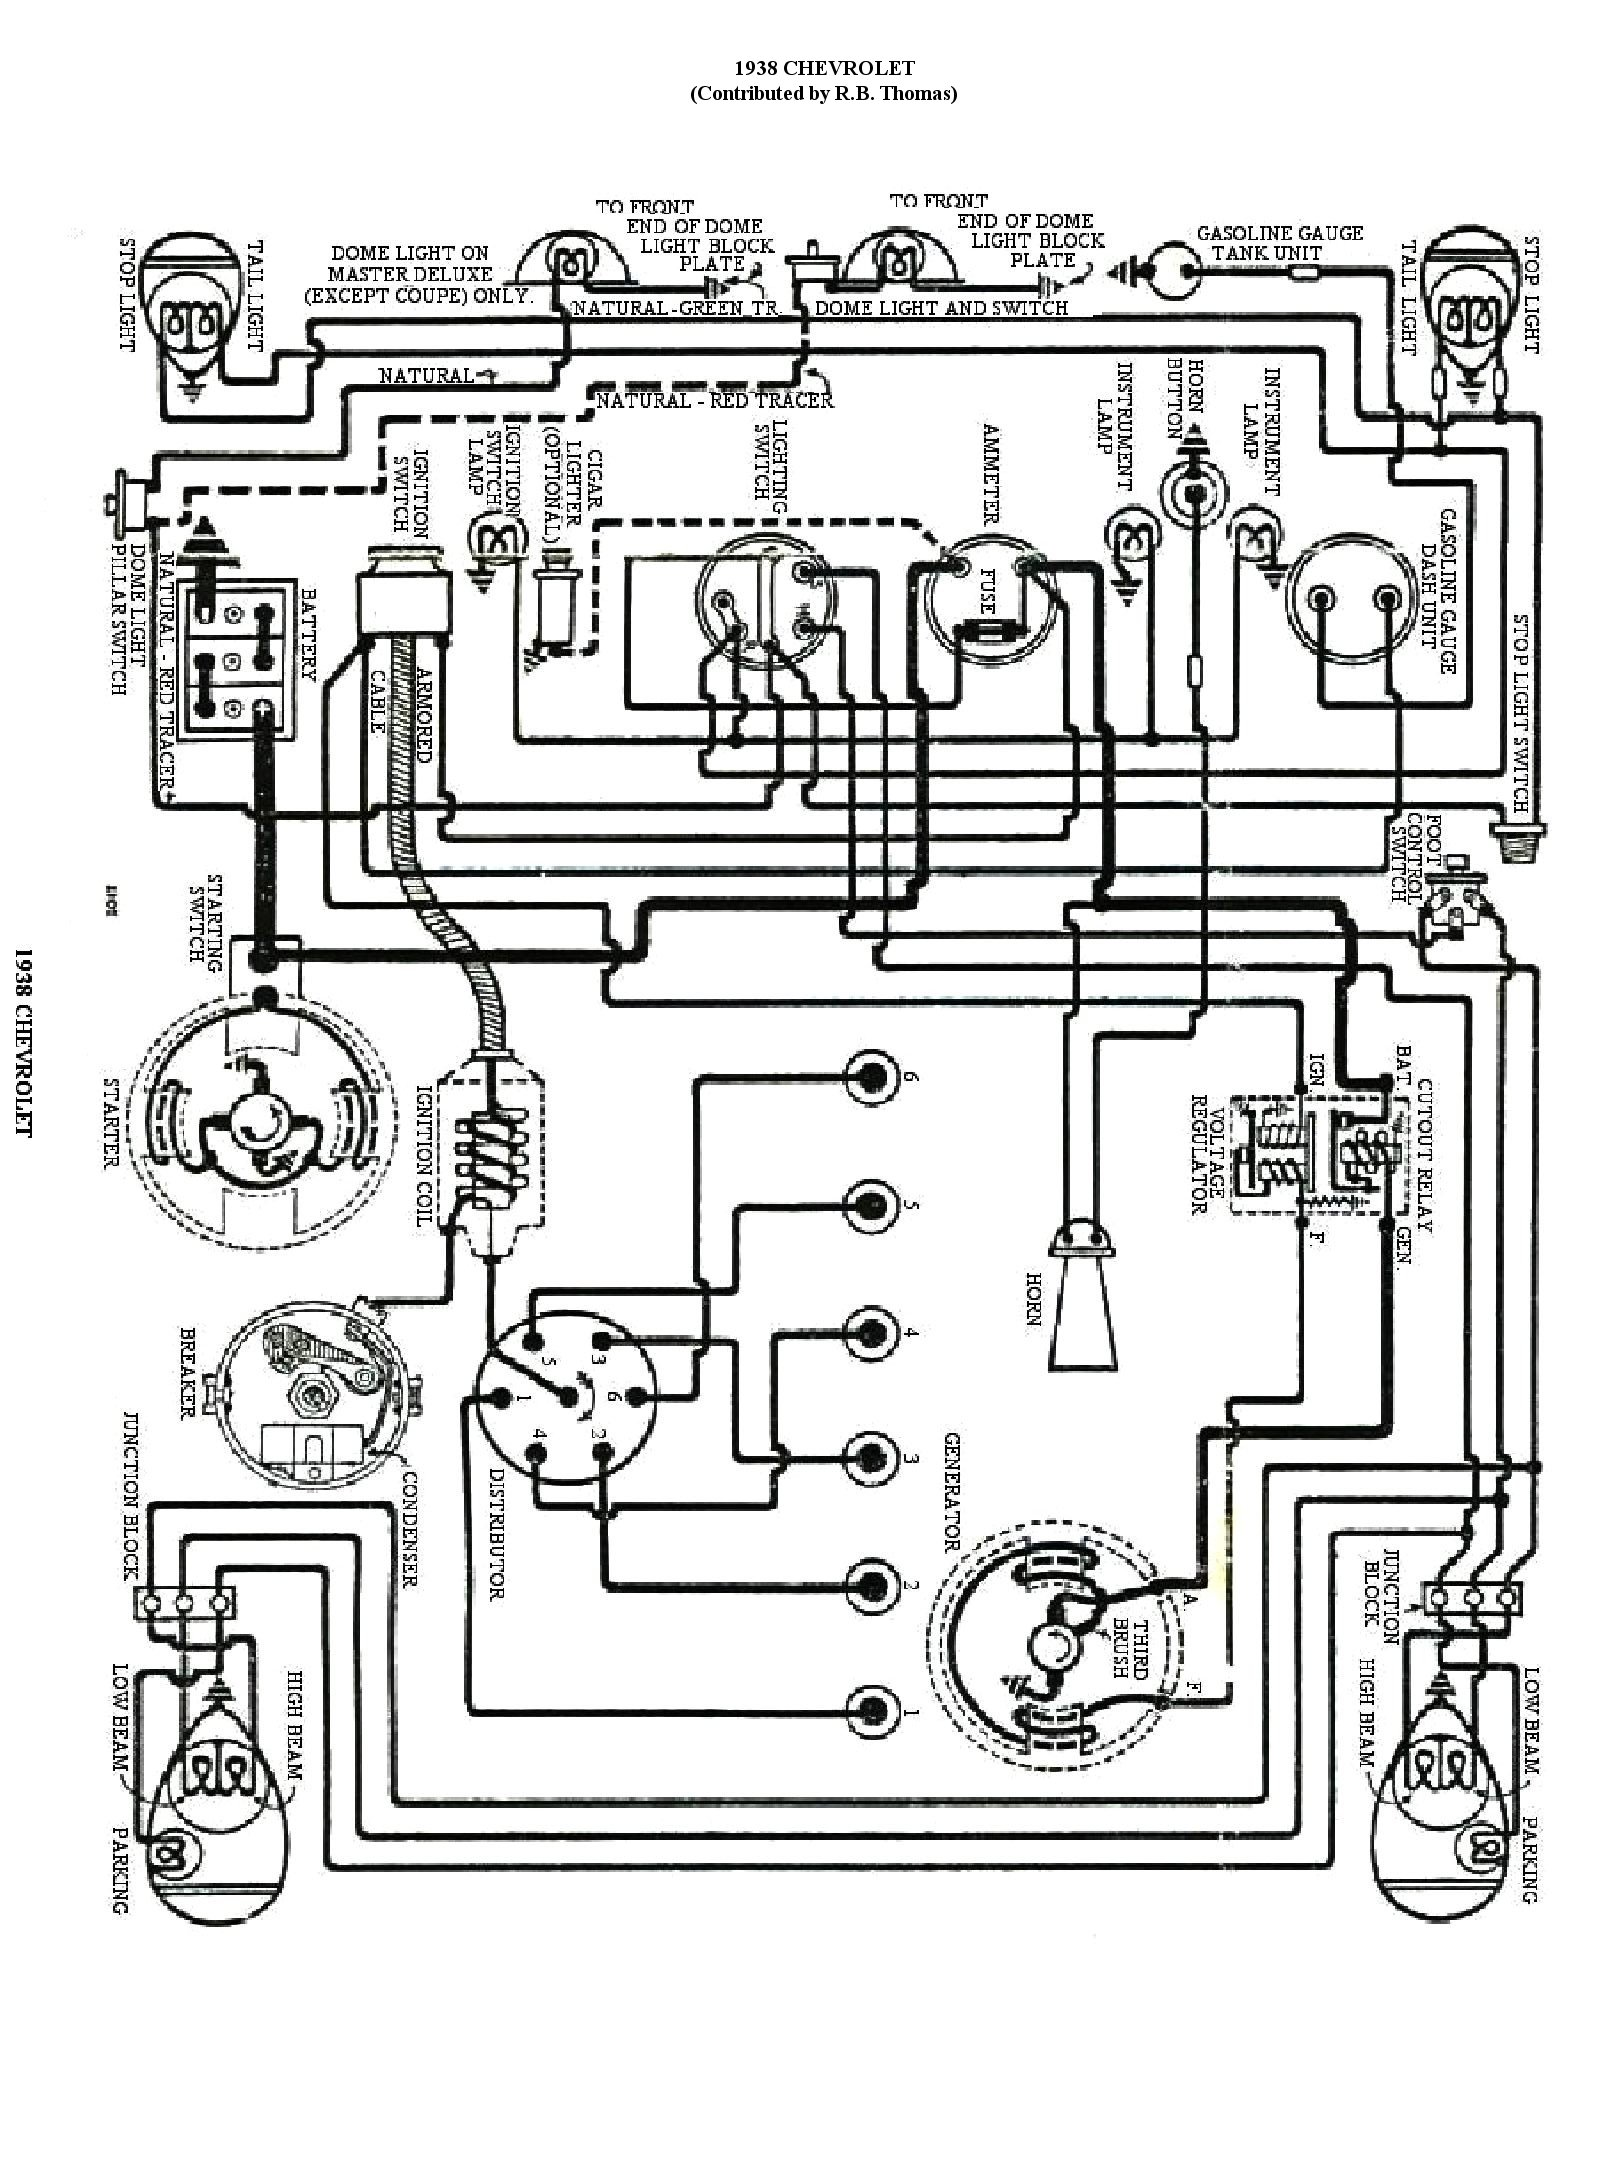 Gm ammeter wiring diagram wiring diagram